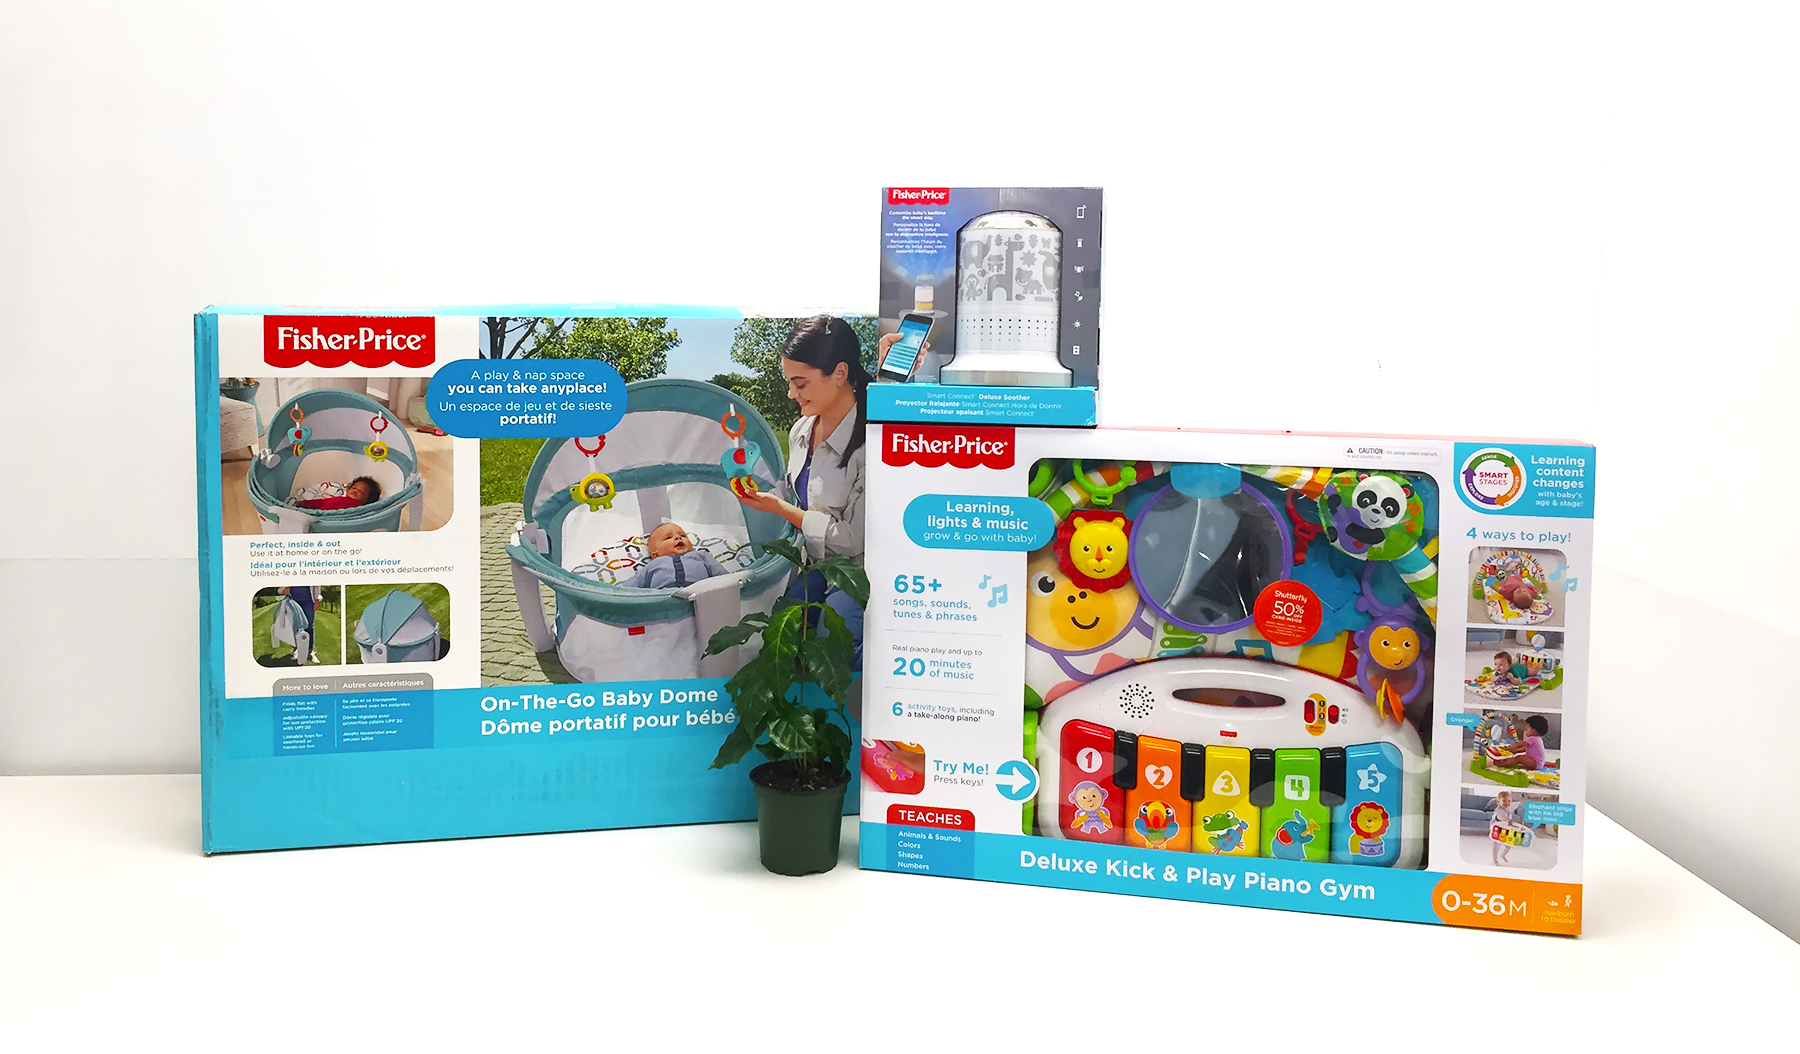 Enter for a chance to win Fisher Price Baby Gear